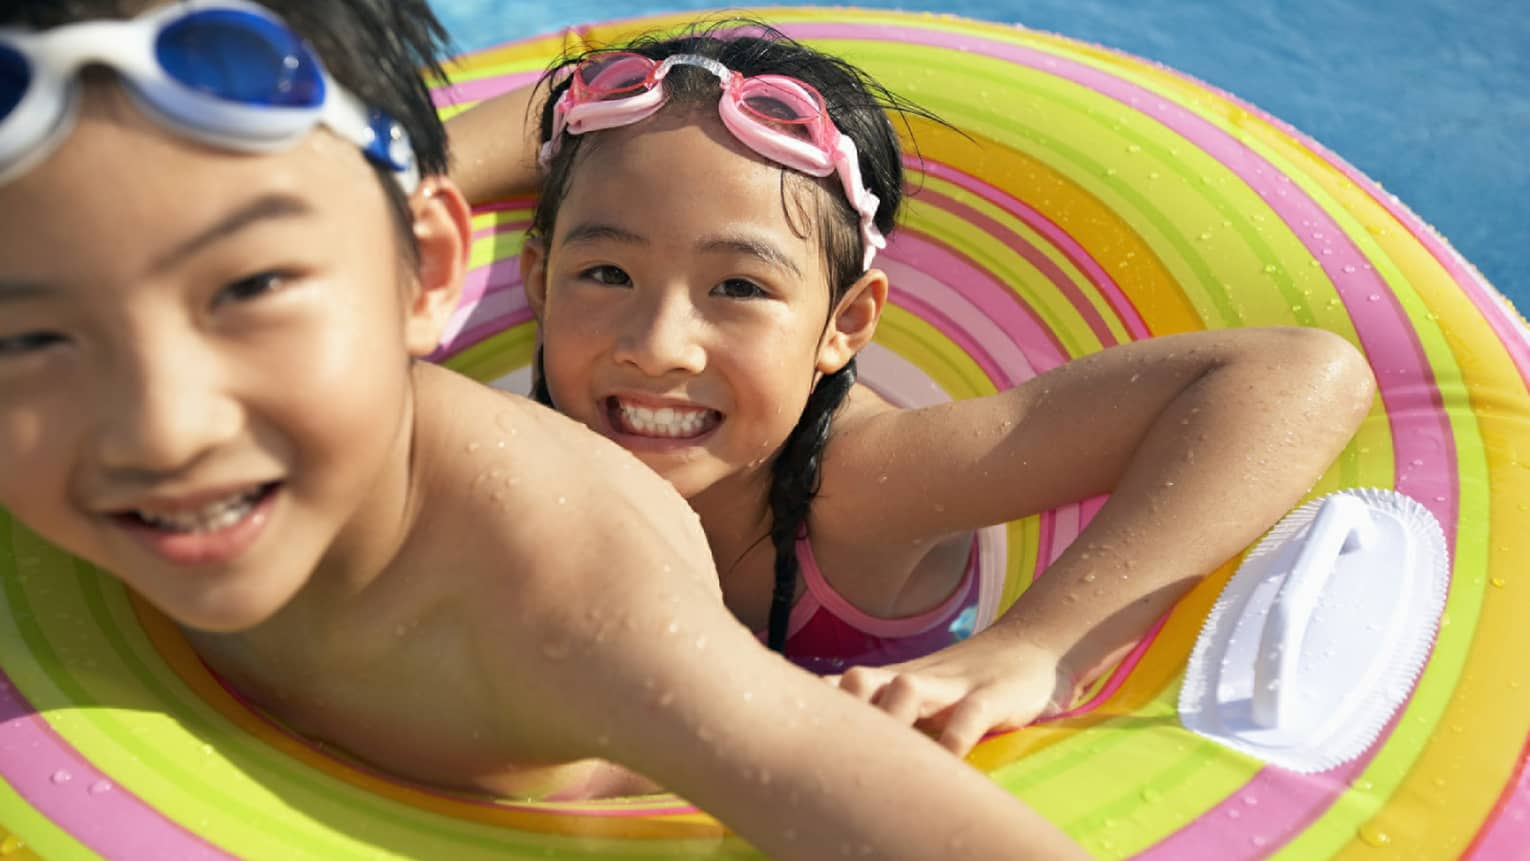 Smiling brother and sister with goggles on head share inflatable tube in swimming pool